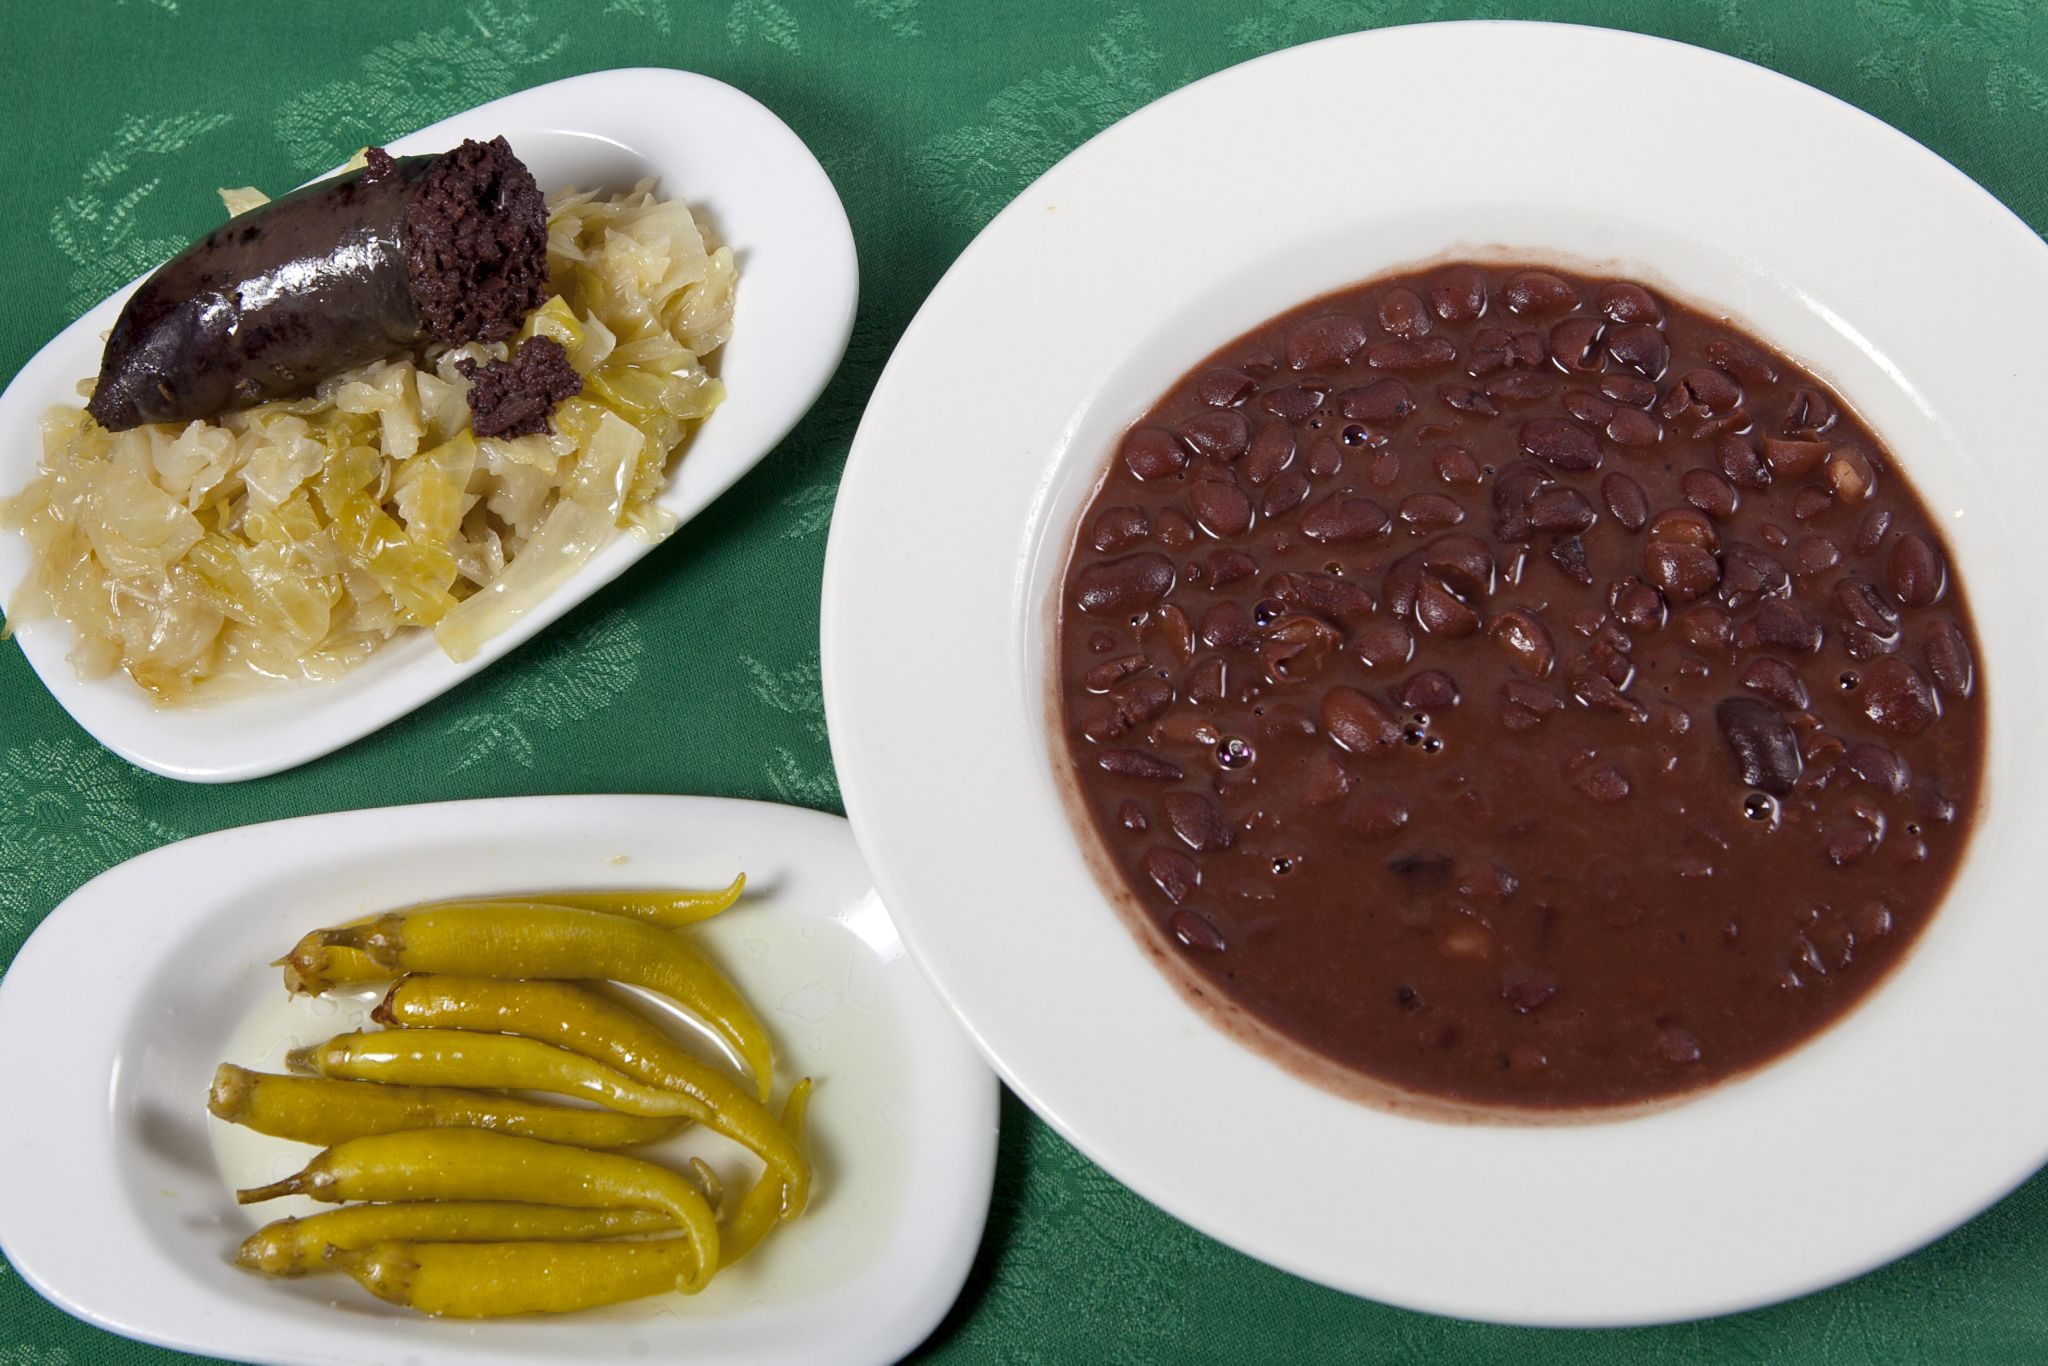 GUIDED TOUR IN TOLOSA MARKET + TOLOSA BEANS MENU